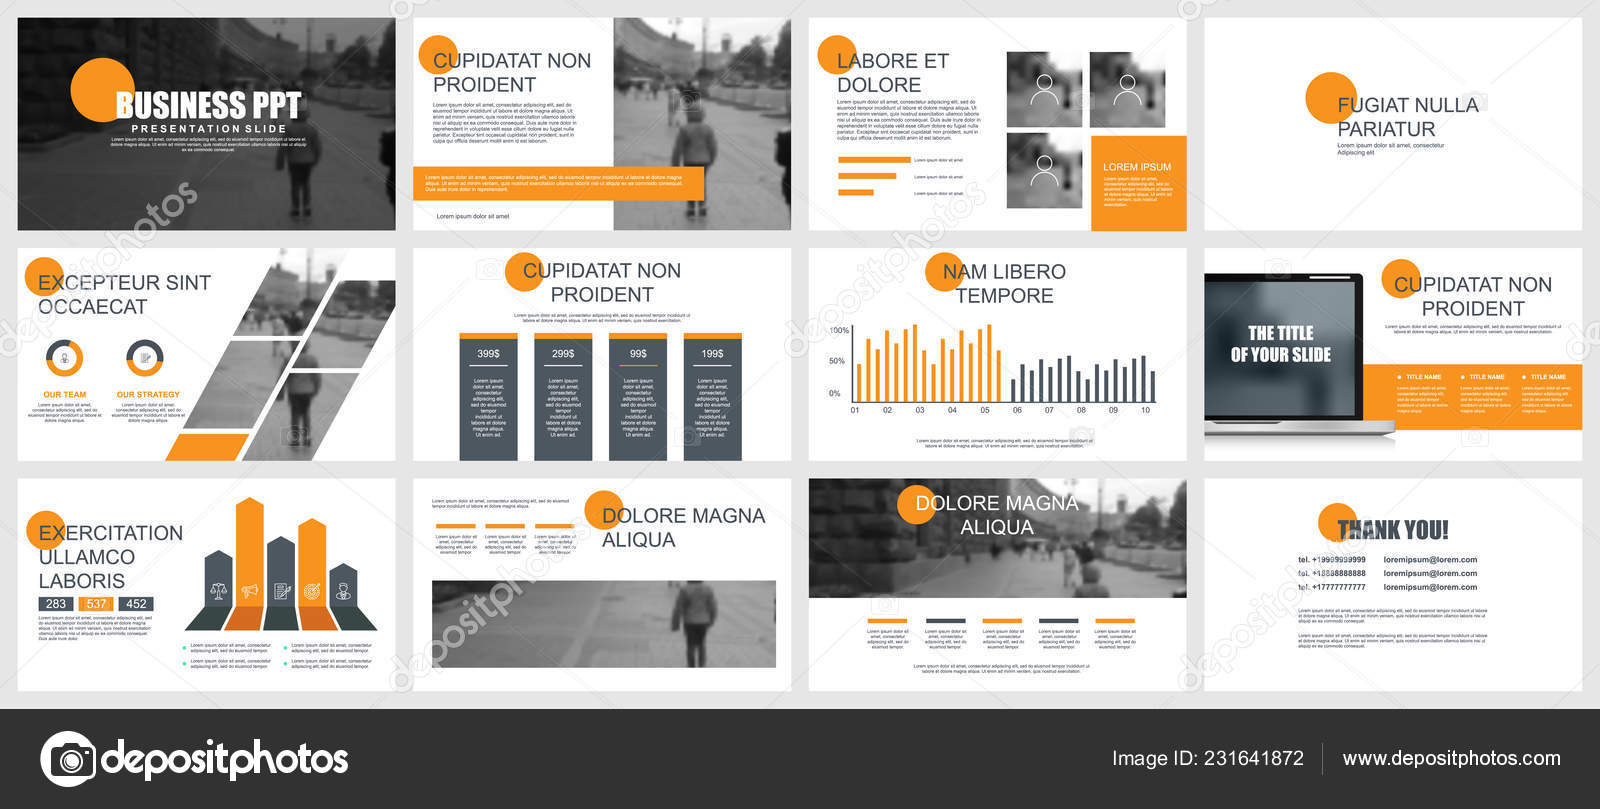 business presentation slides templates infographic elements can used